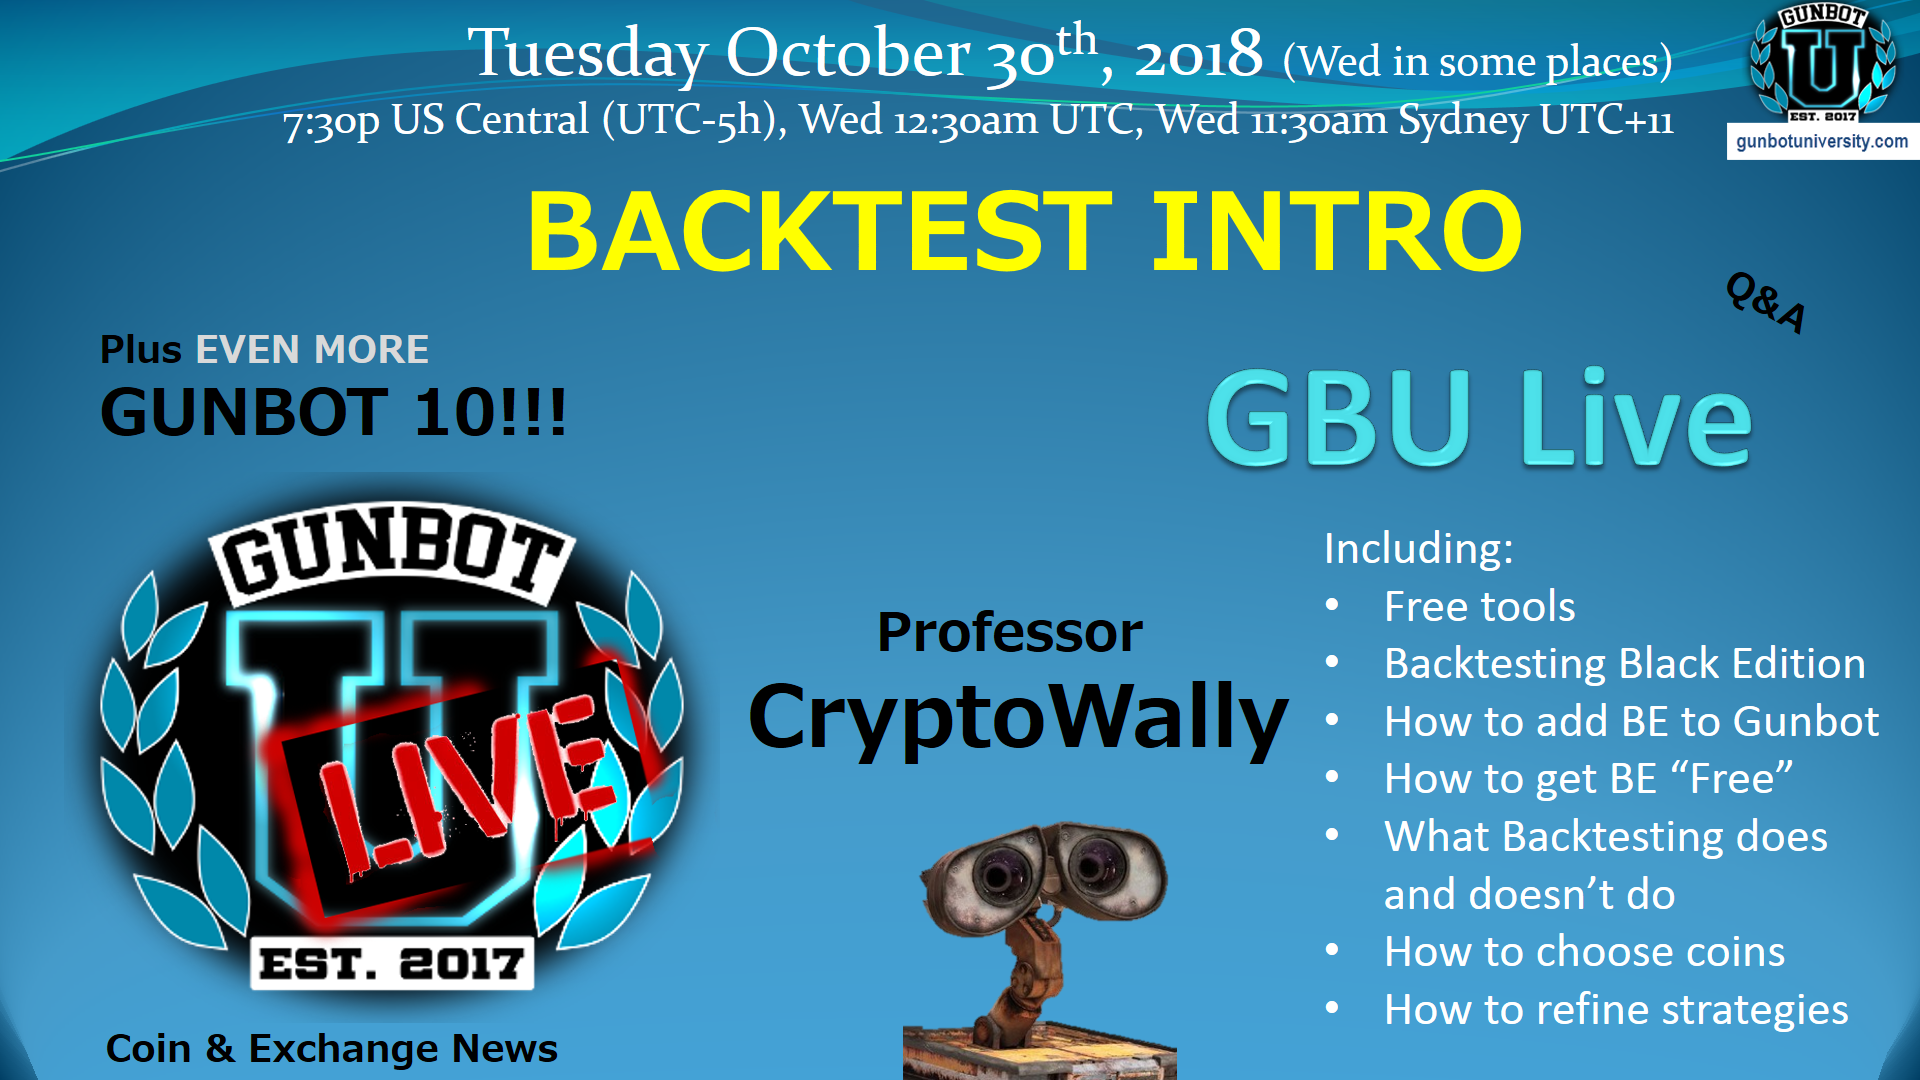 GBU LIVE Backtesting Intro